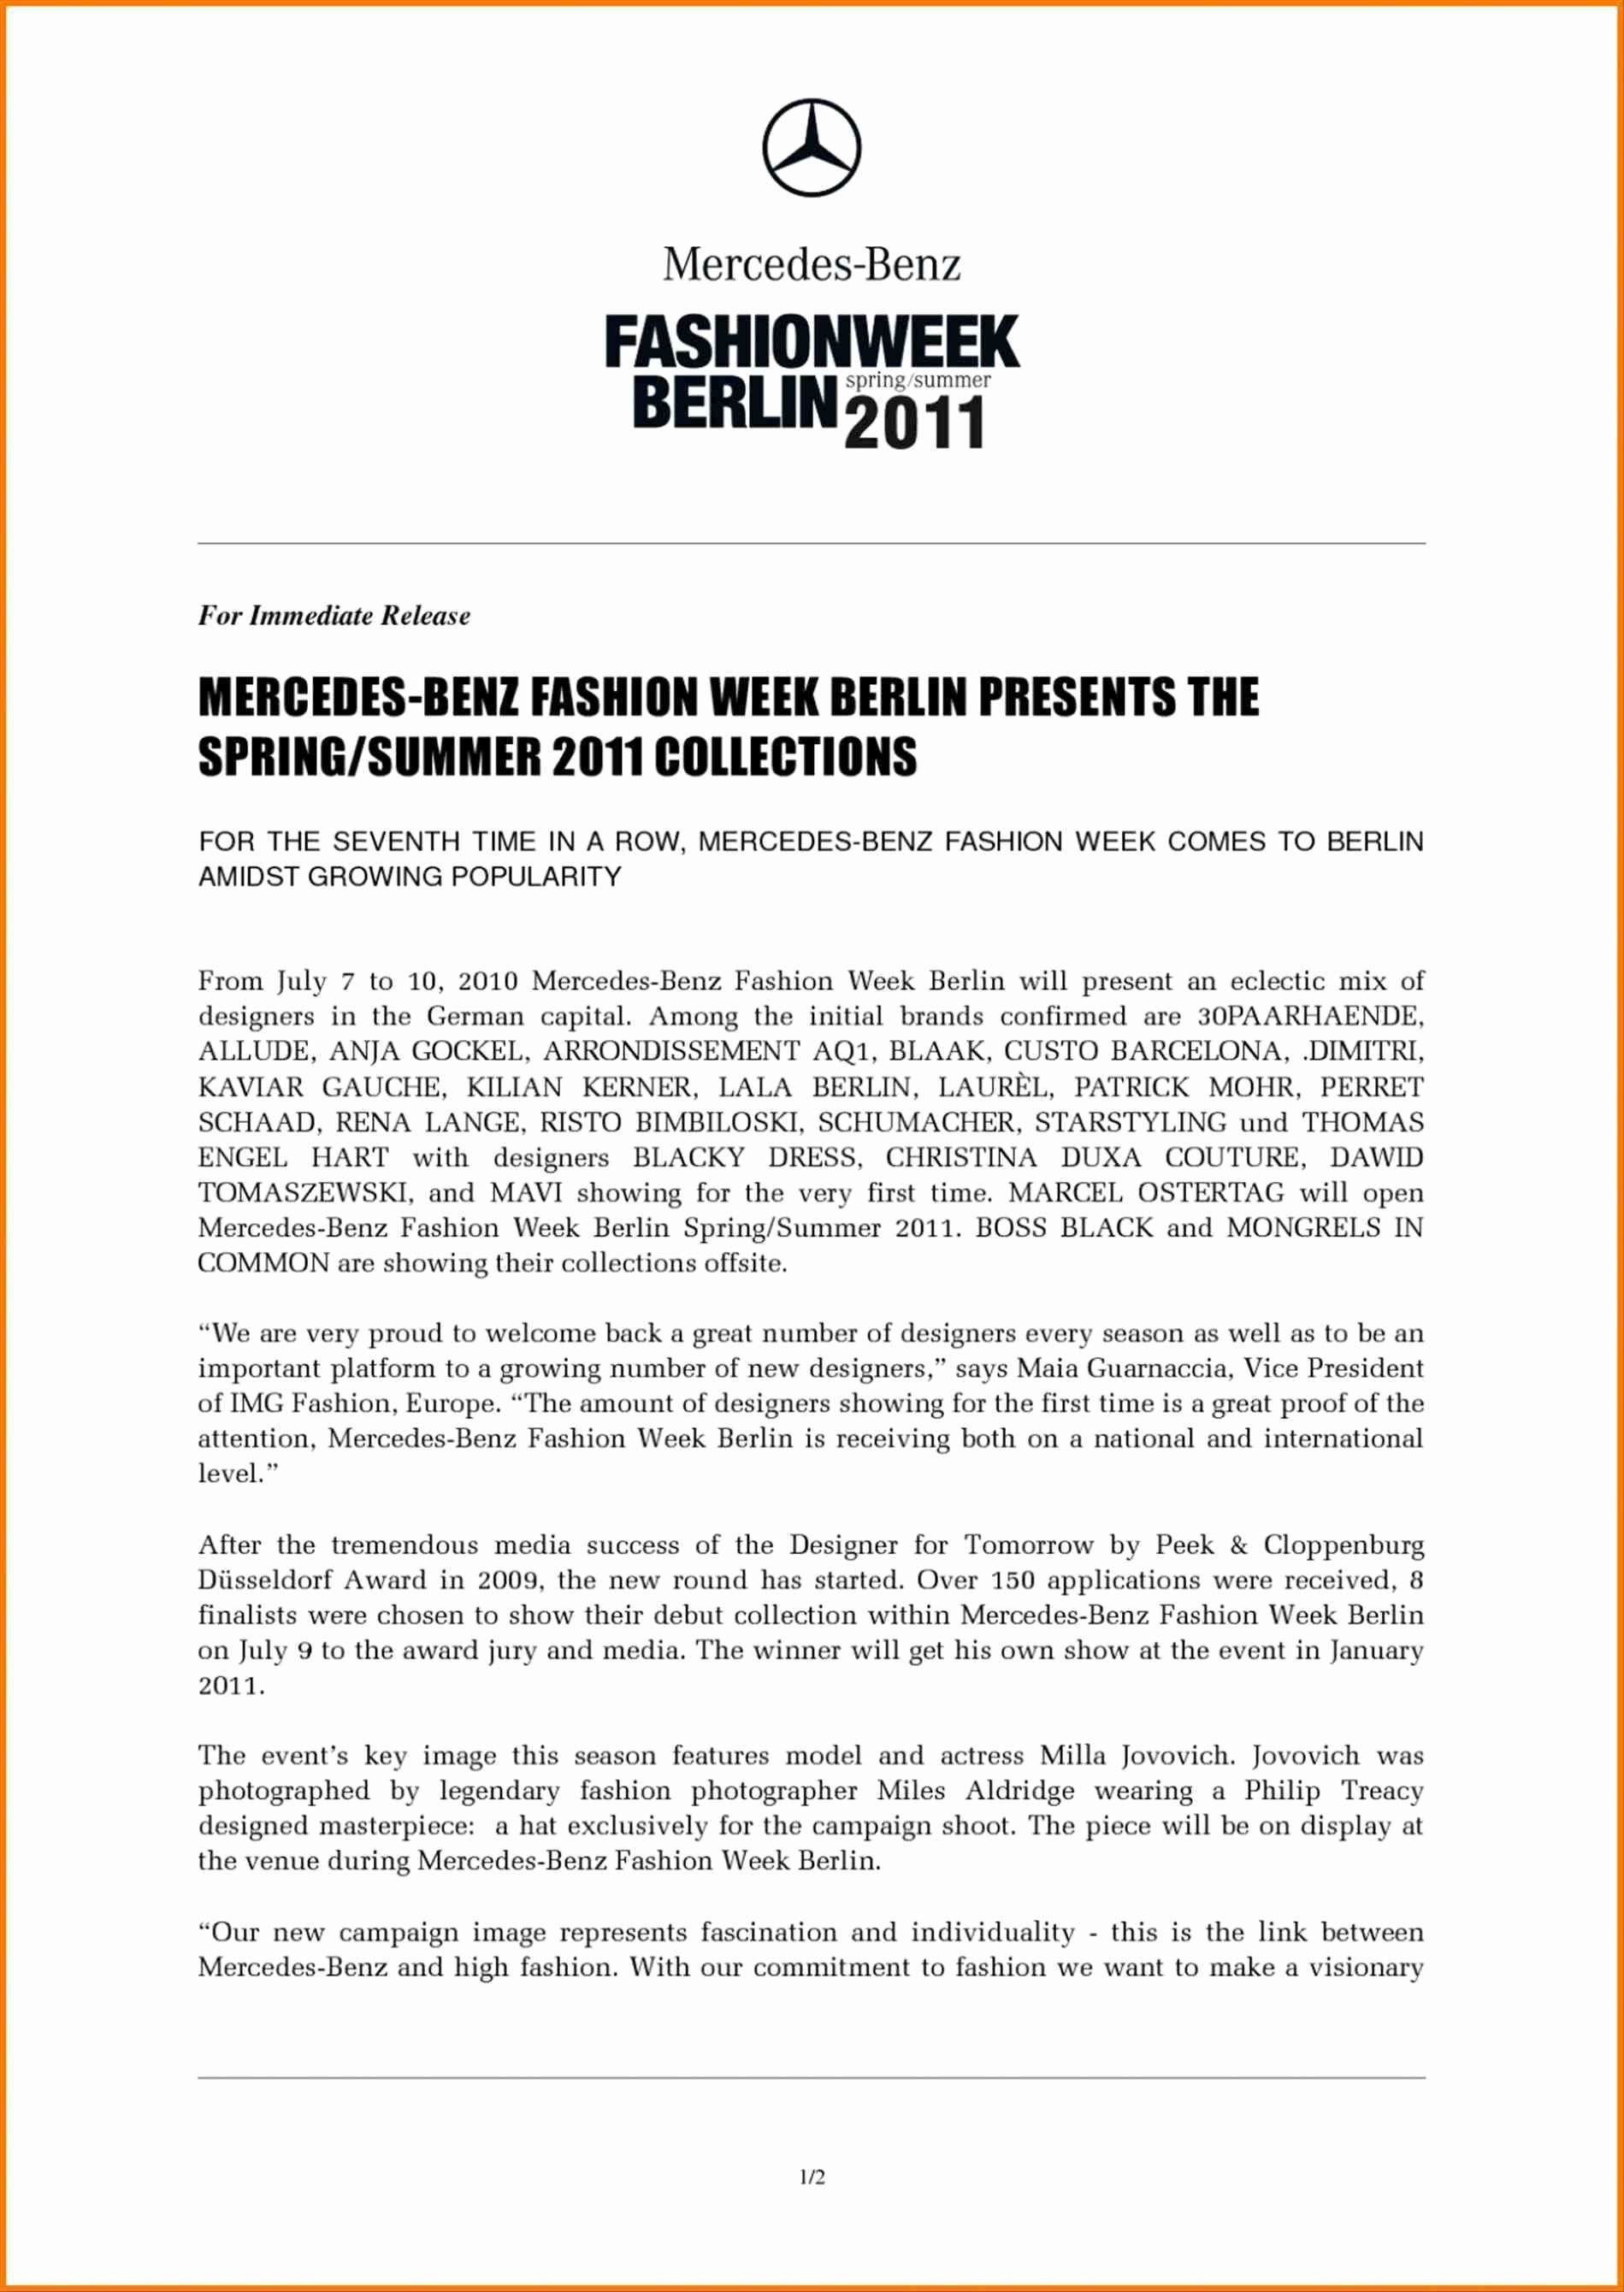 Ap Style Press Release Template Inspirational Press Release Brief Template Write Happy Ending Waa Mood